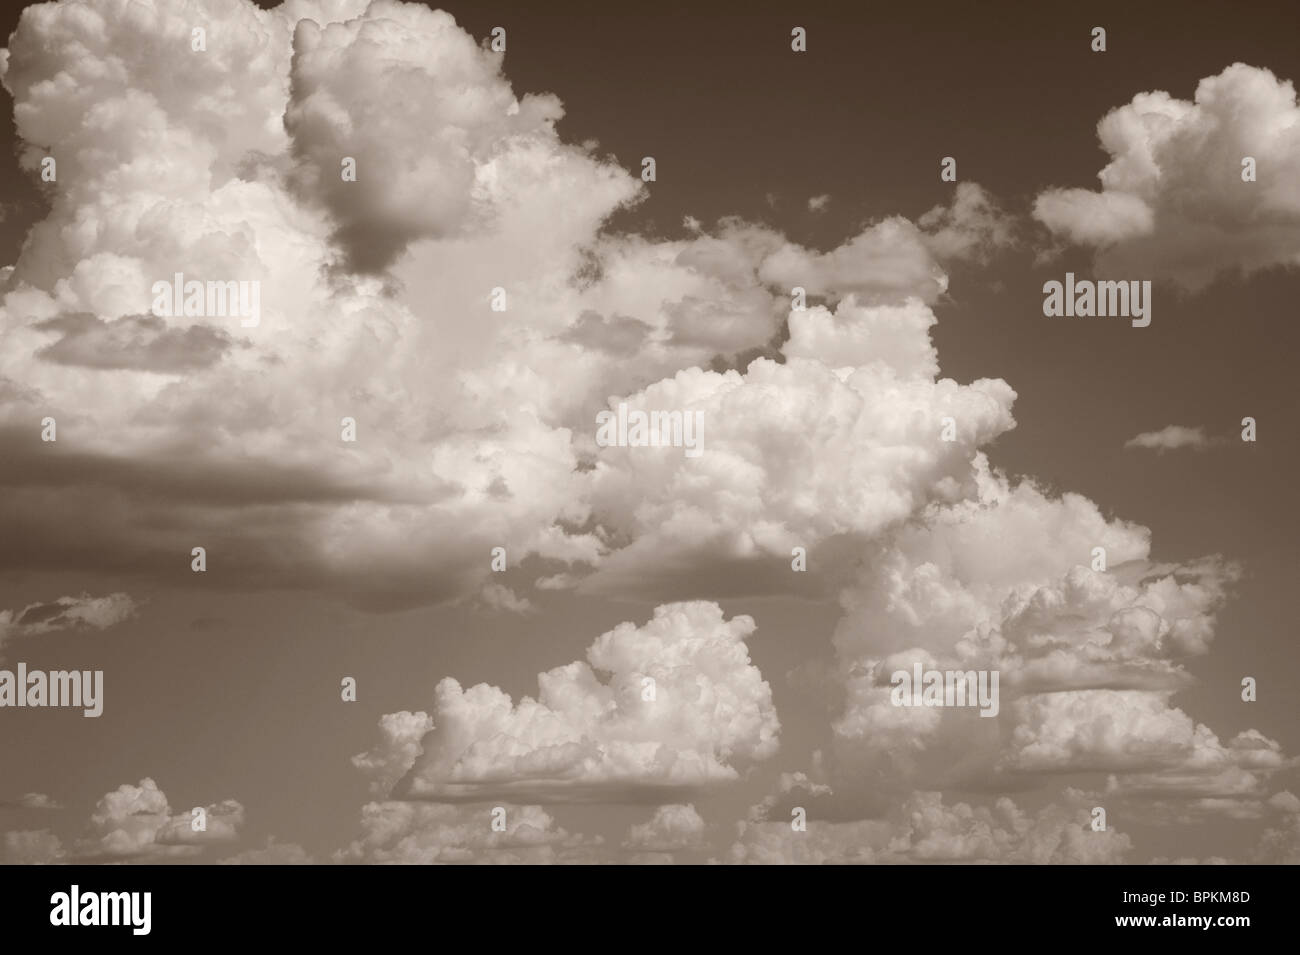 Clouds and Sky in Black and White - Stock Image